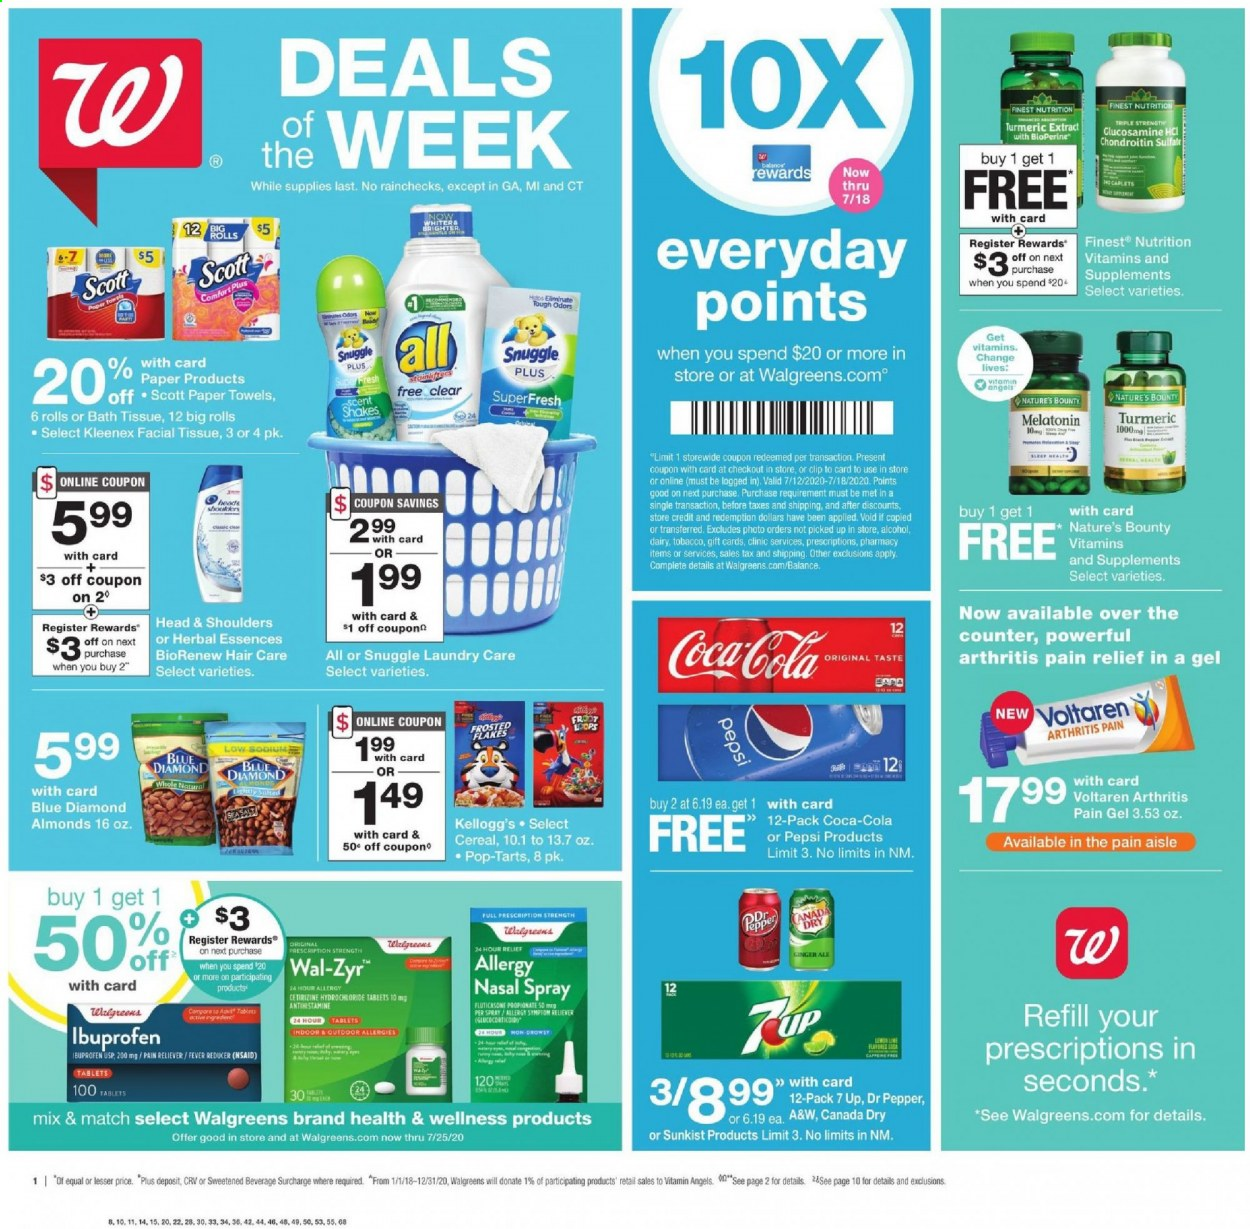 Walgreens Flyer - 07.12.2020 - 07.18.2020 - Sales products - ale, almonds, bath tissue, canada dry, cereals, coca-cola, ginger, ginger ale, glucosamine, kleenex, melatonin, nature's bounty, scott, snuggle, spray, turmeric, wal-zyr, head & shoulders, ibuprofen, pain relief, paper towel, pepsi, pepper, cereal, flakes, bounty, dr. pepper, refill, tablets. Page 1.